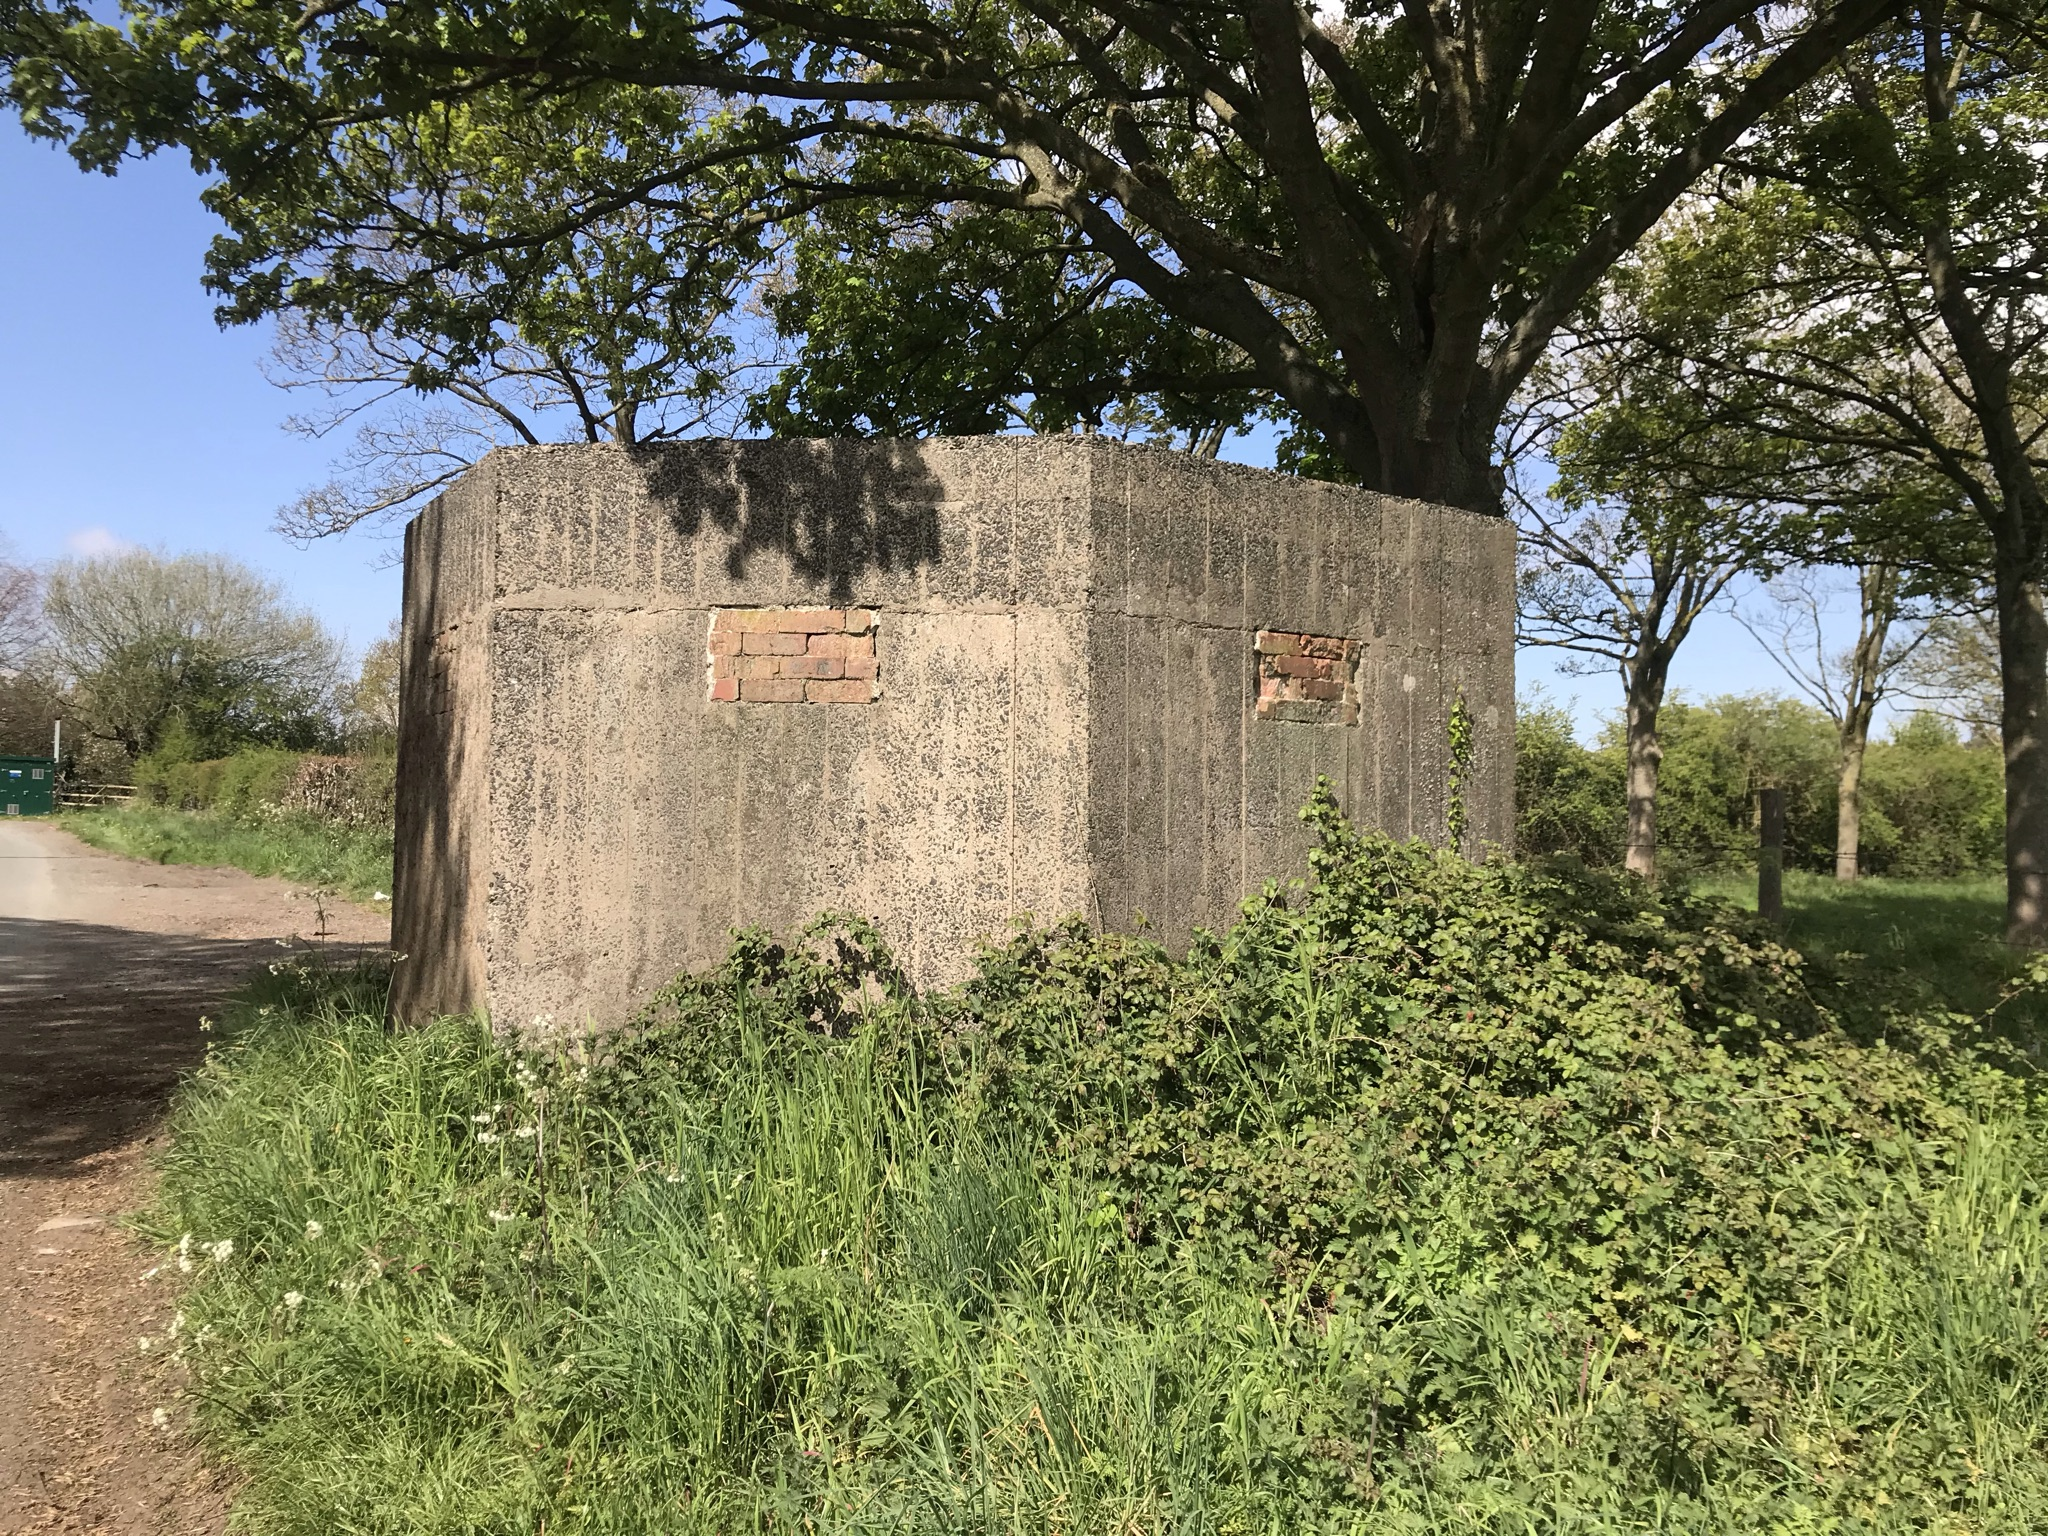 A concrete WW2 pill box under a large oak tree. The windows for the guns are bricked up.